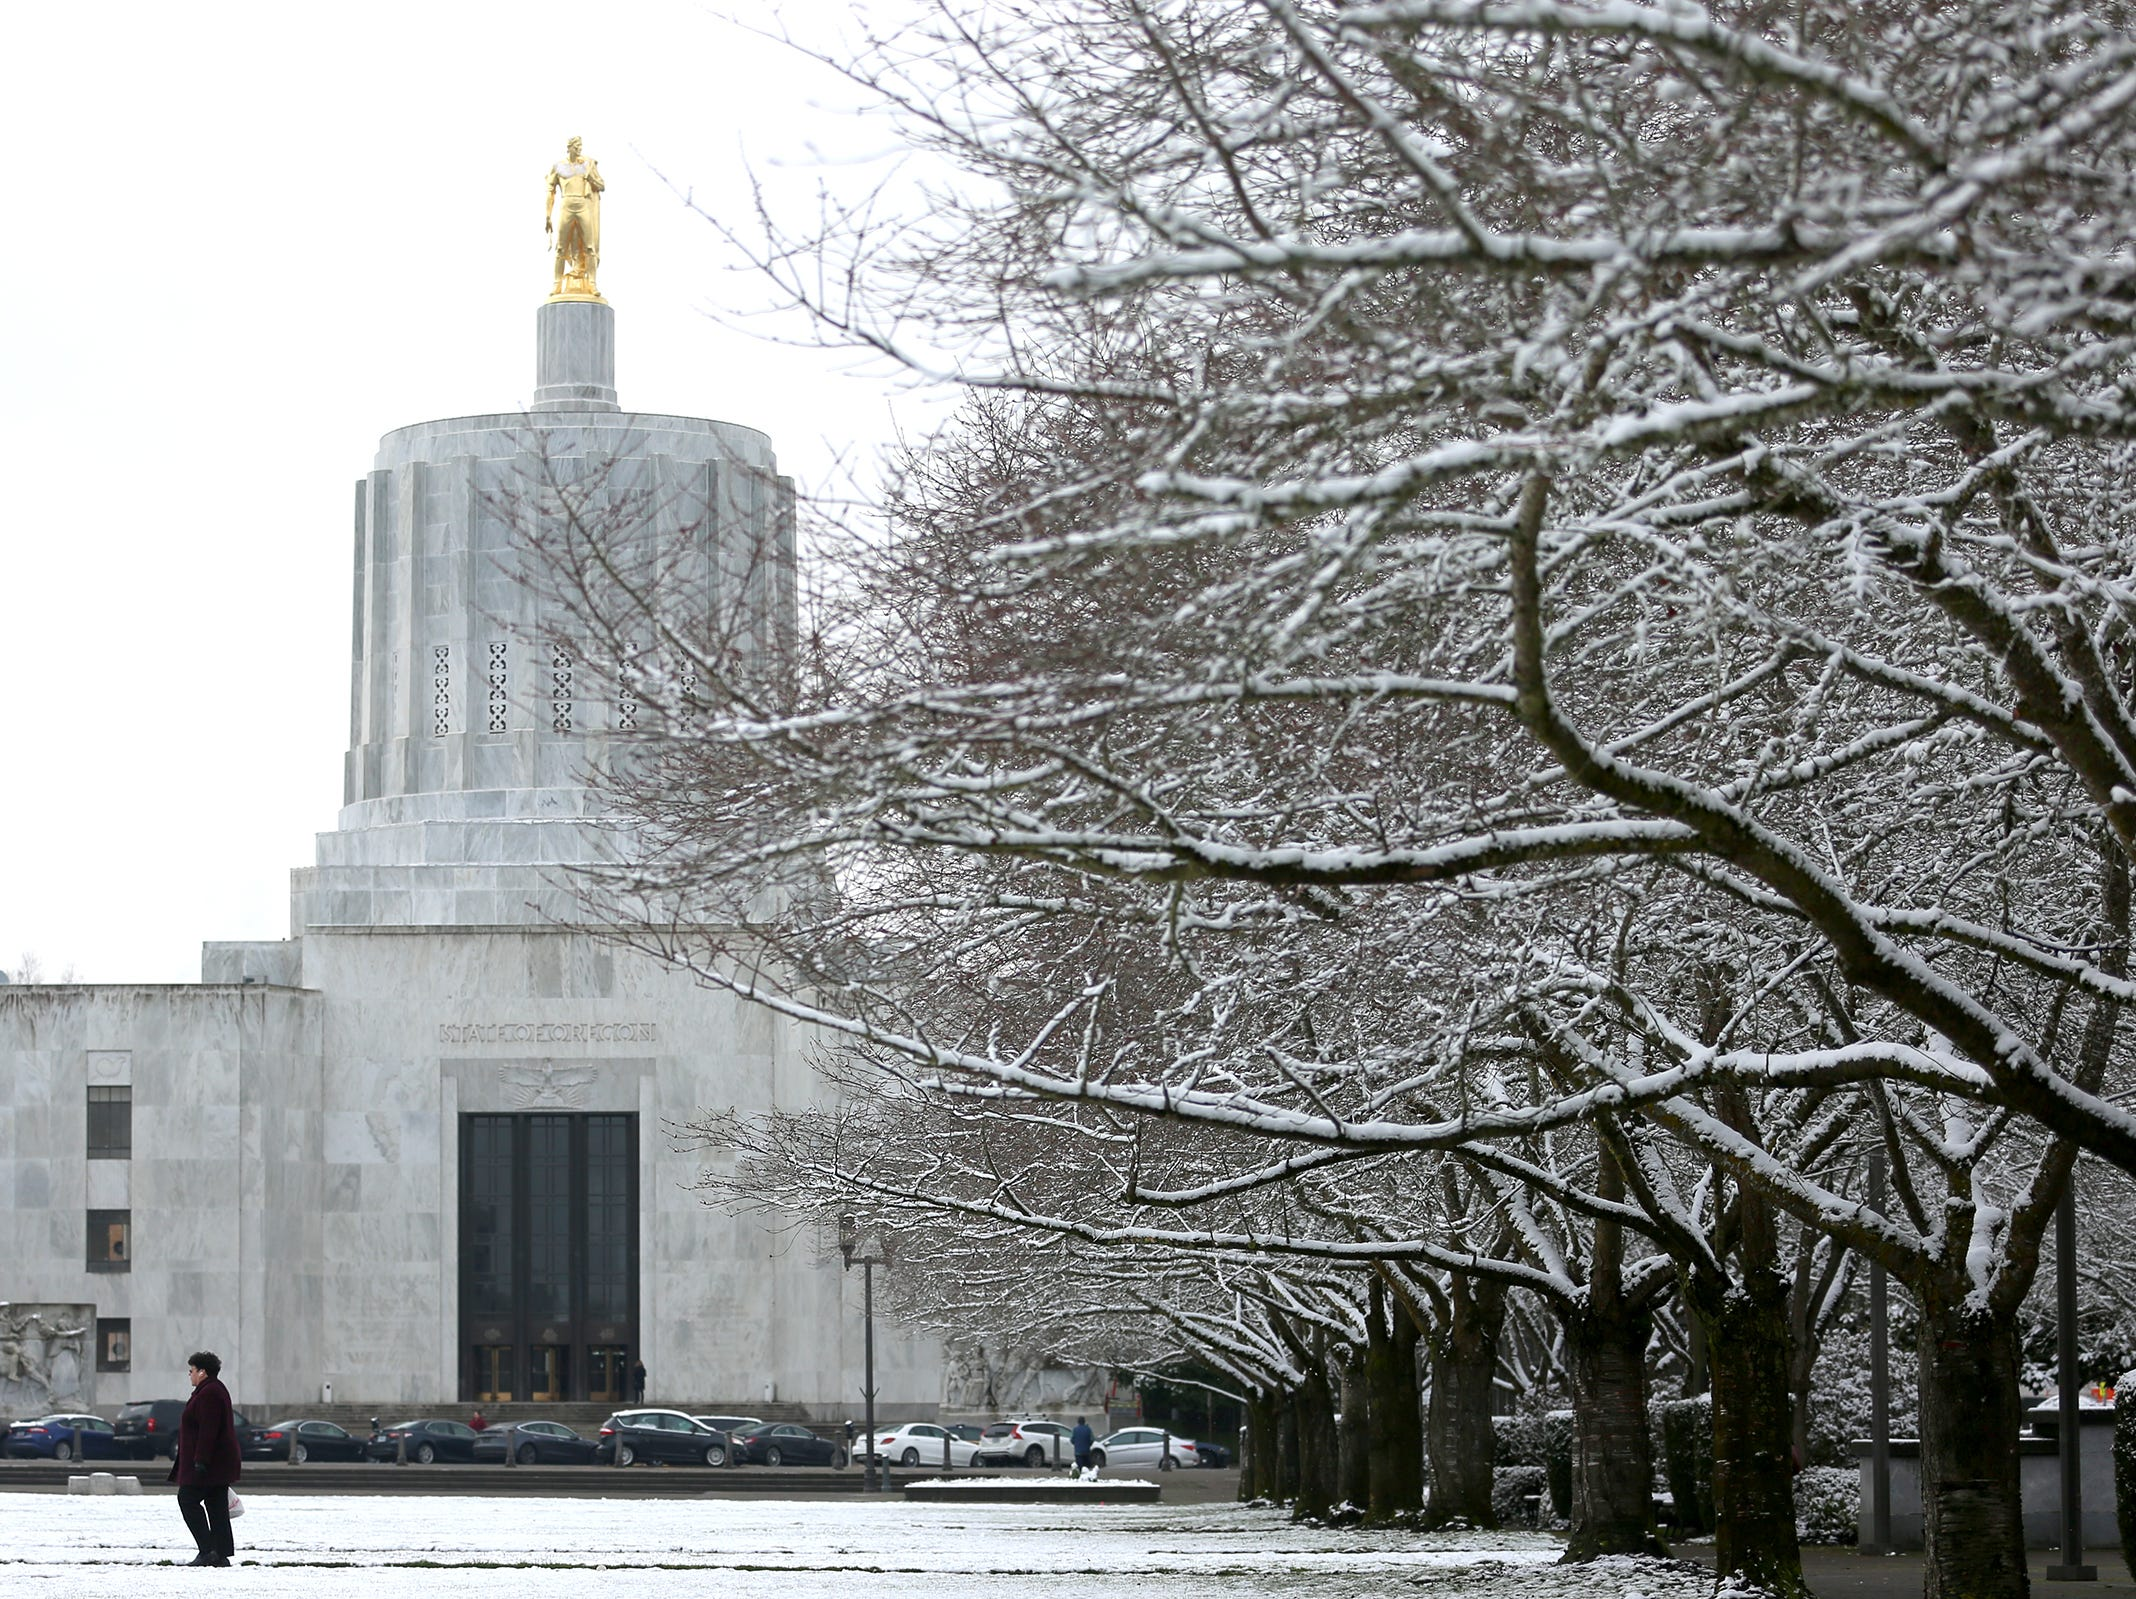 The Oregon State Capitol is pictured after snowfall in Salem on Tuesday, Feb. 5, 2019.